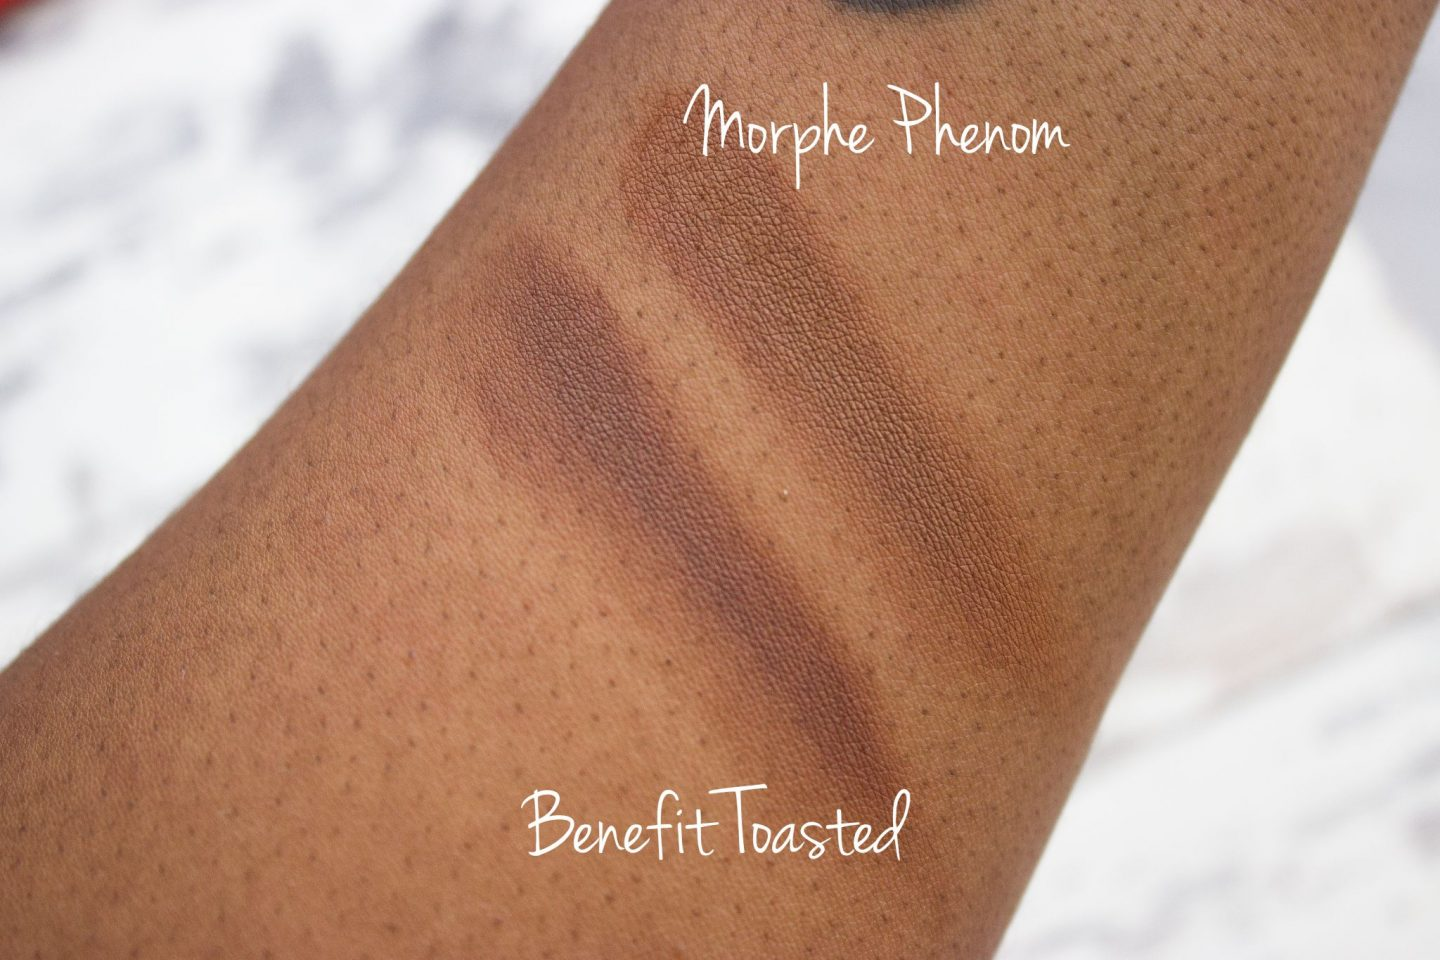 Benefit Hoola Toasted Mophe Phenom Swatches Compare Dupe Dark Skin